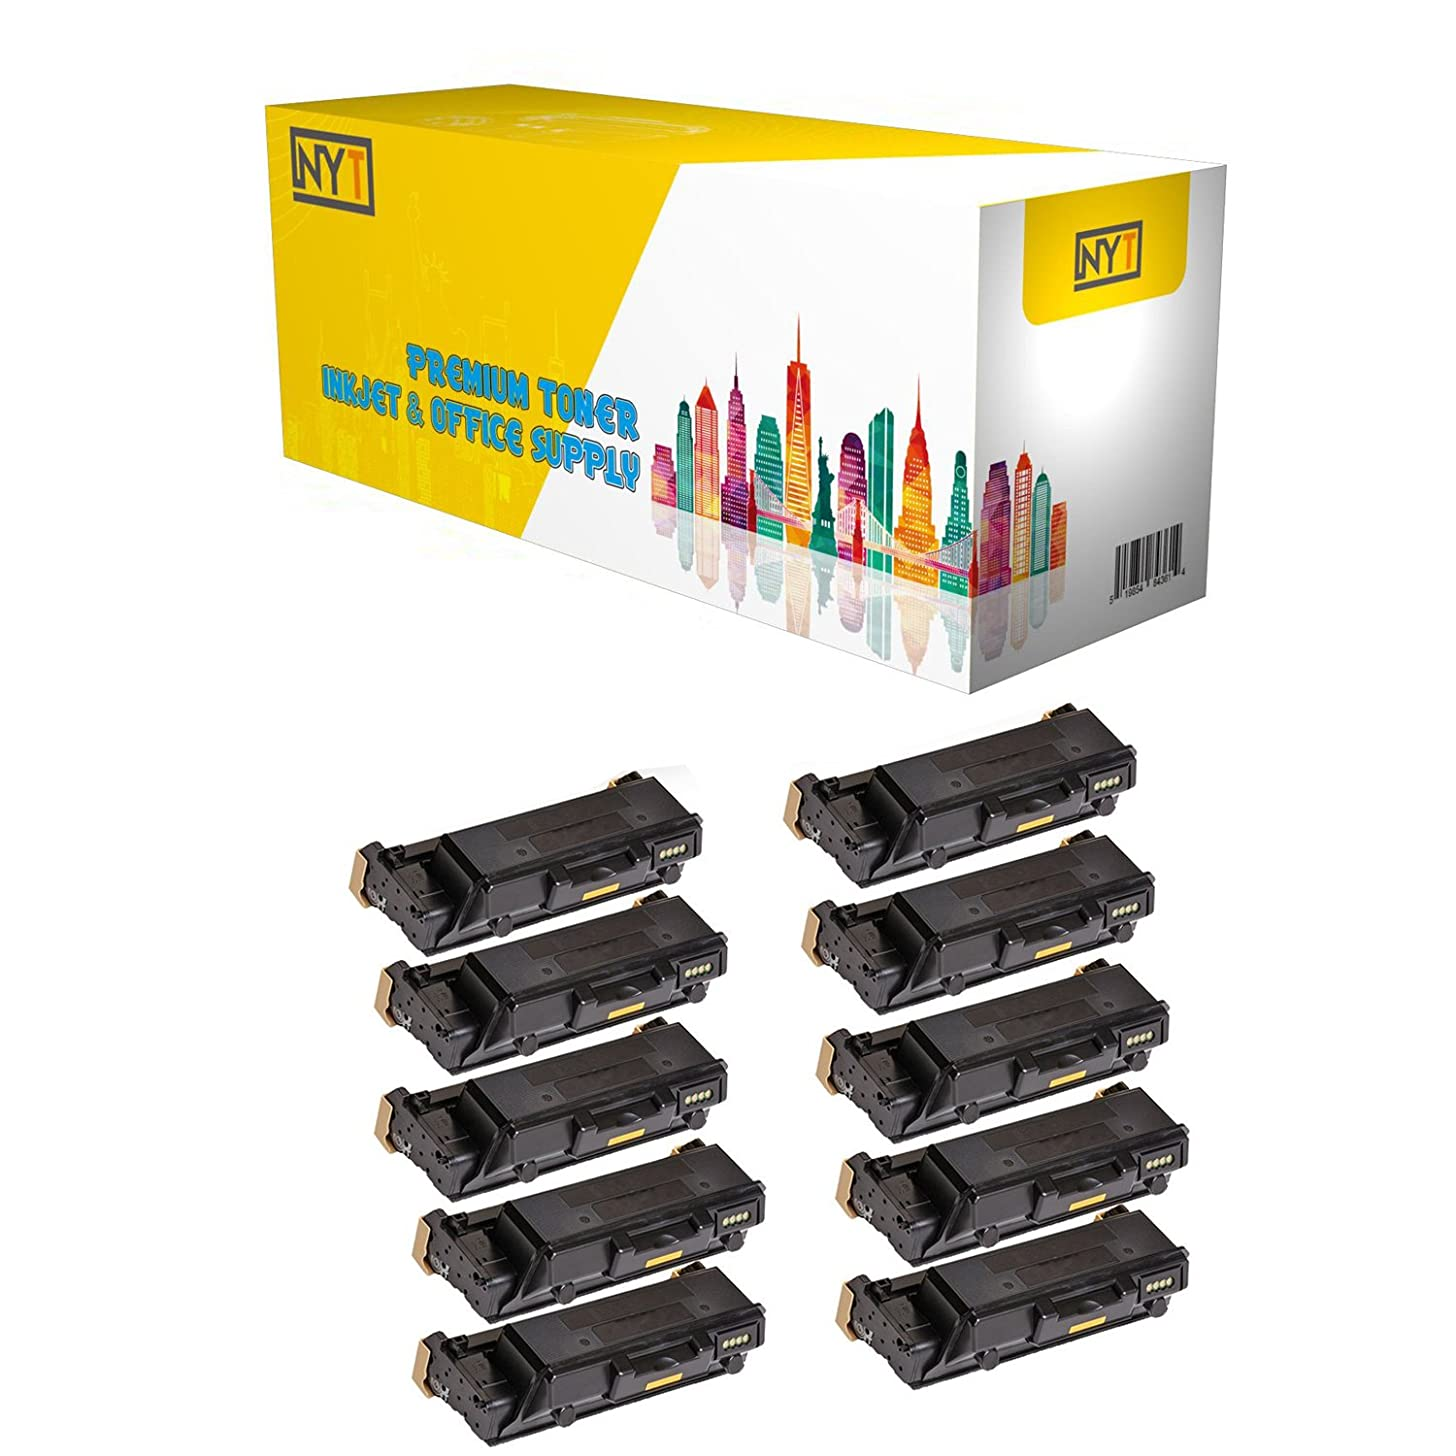 New York TonerTM New Compatible 10 Pack 106R03624 High Yield Toner for Xerox - Phaser 3330 WorkCentre 3335 3345 . -- Black